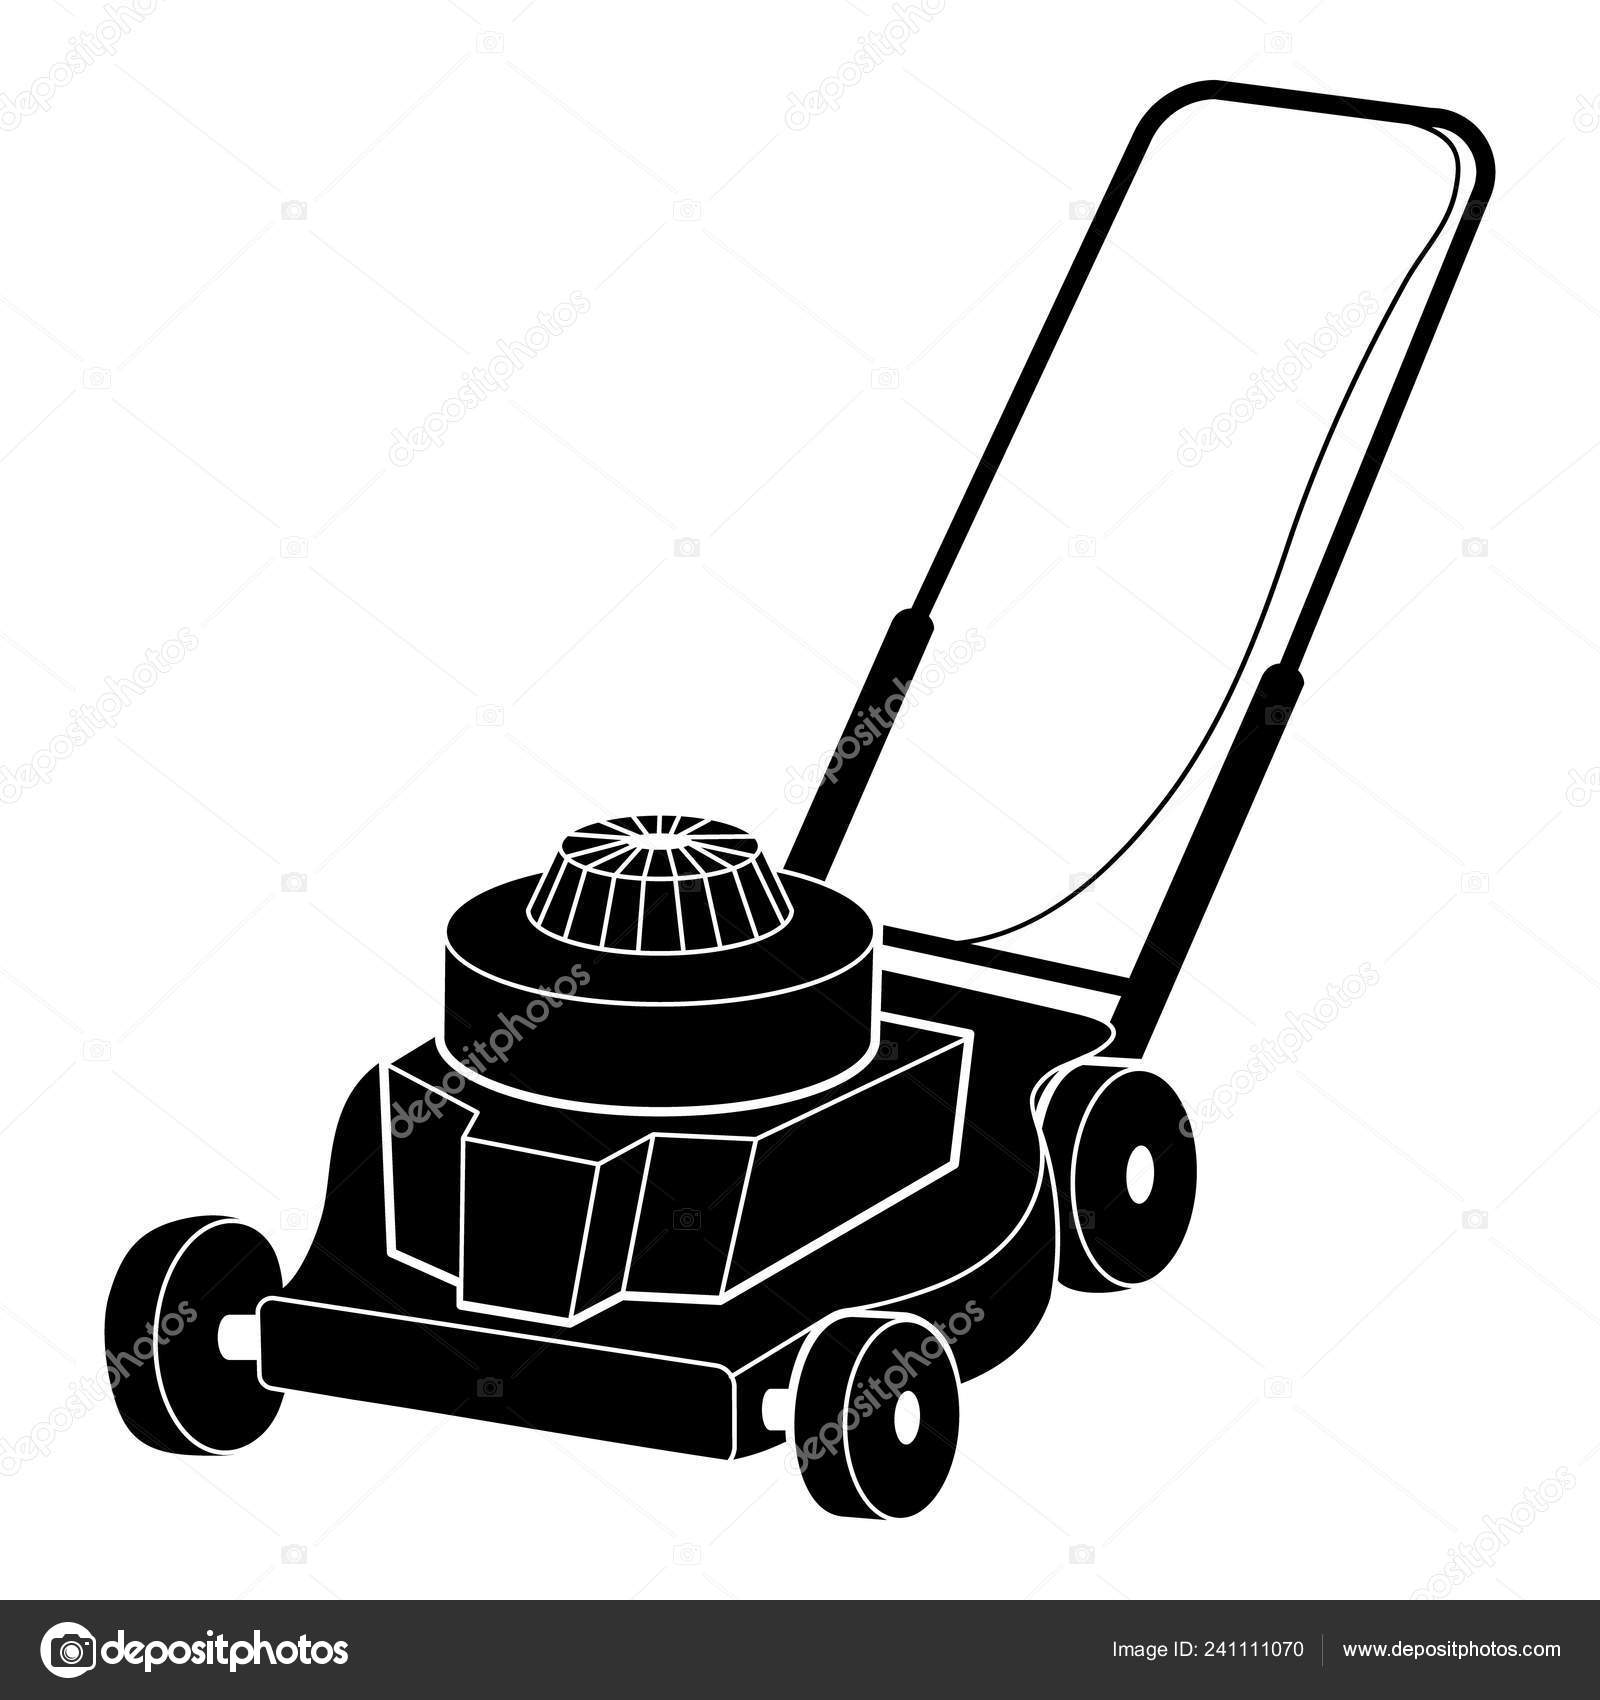 Petrol Lawn Mower Icon Simple Style Stock Vector Image By C Ylivdesign 241111070